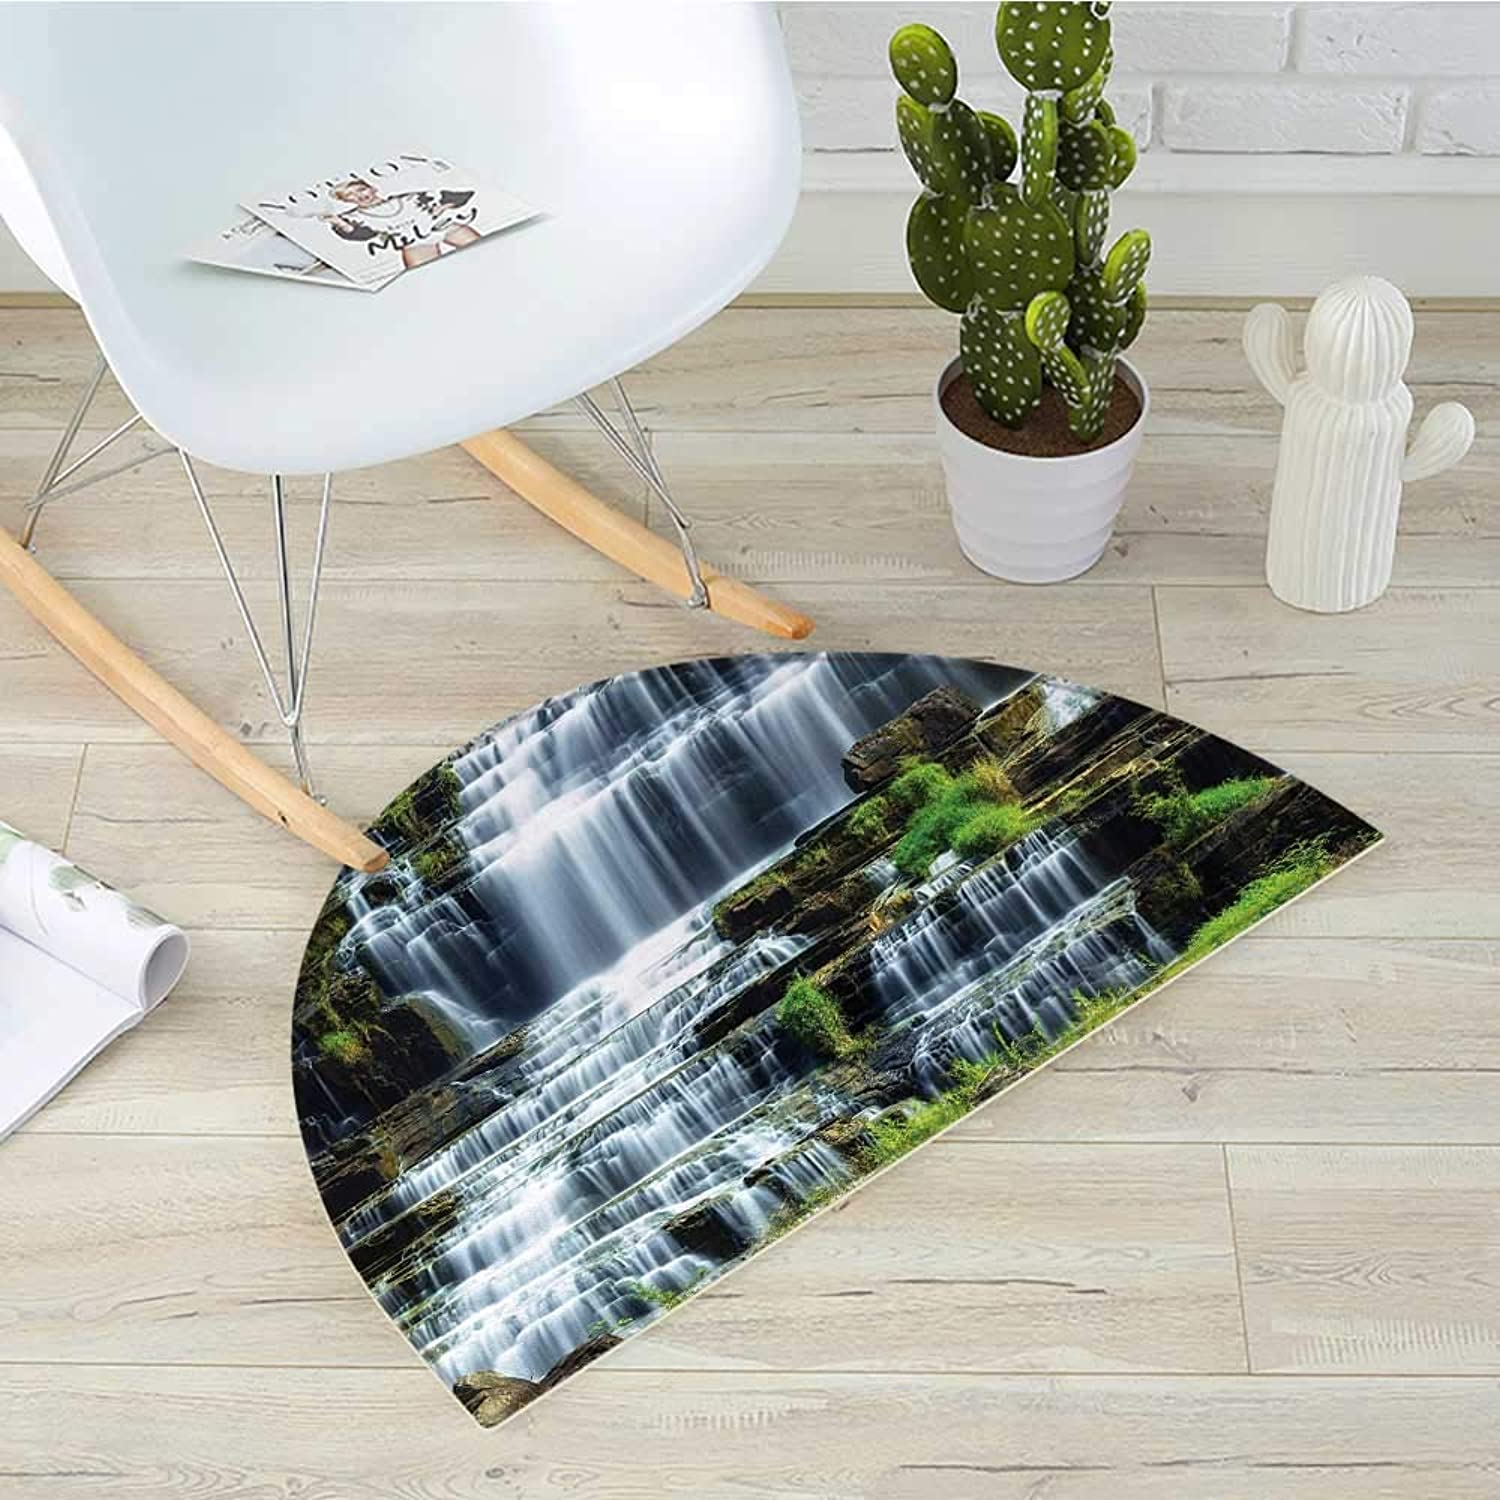 Rainforest Semicircle Doormat Waterfall in The Middle of Tropical Jungle Natural Scenery Countryside Style Halfmoon doormats H 39.3  xD 59  Green White